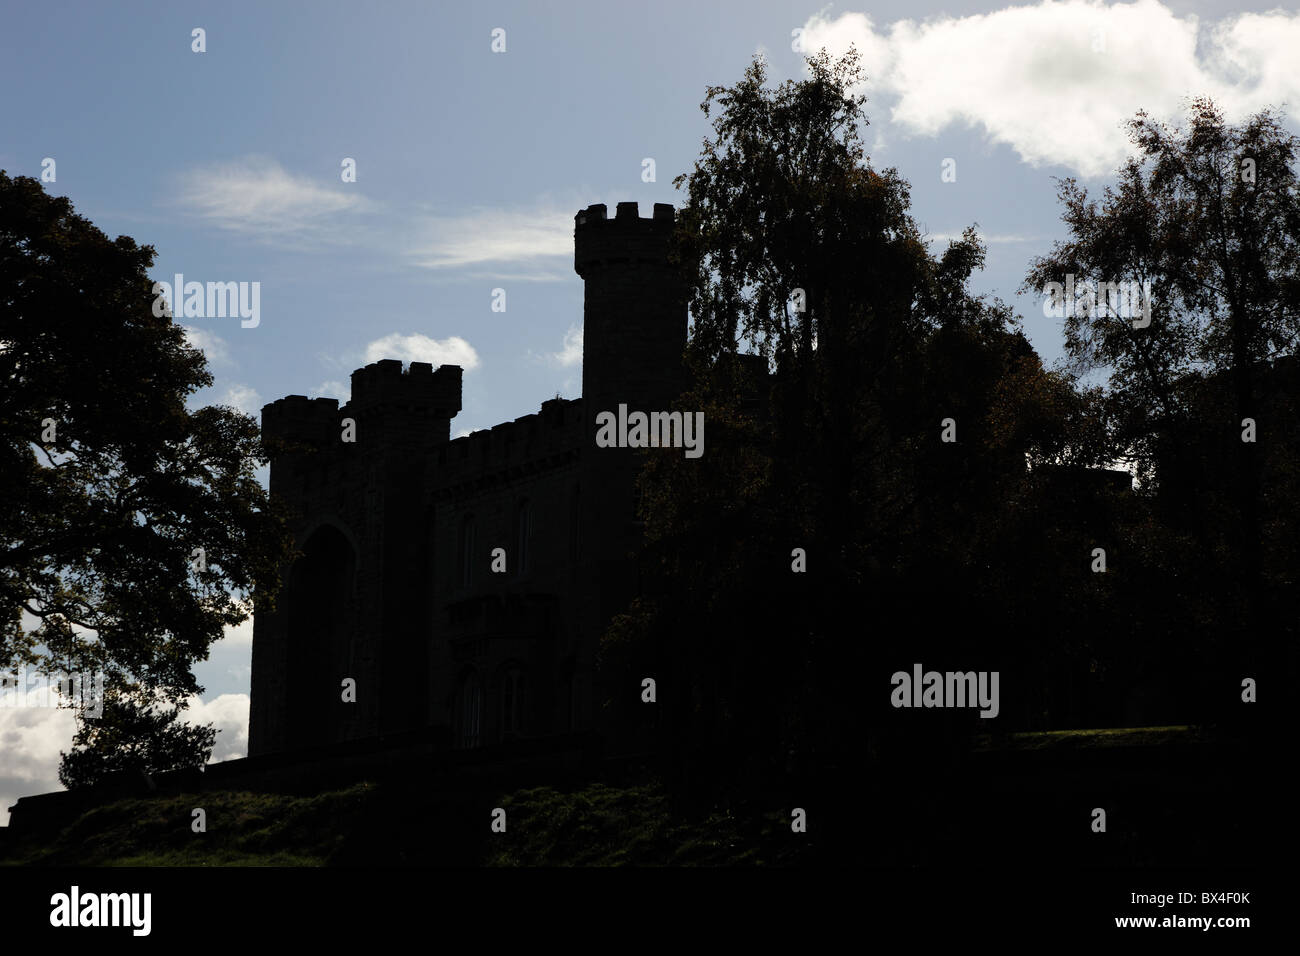 silhouette-of-bodelwyddan-castle-in-the-